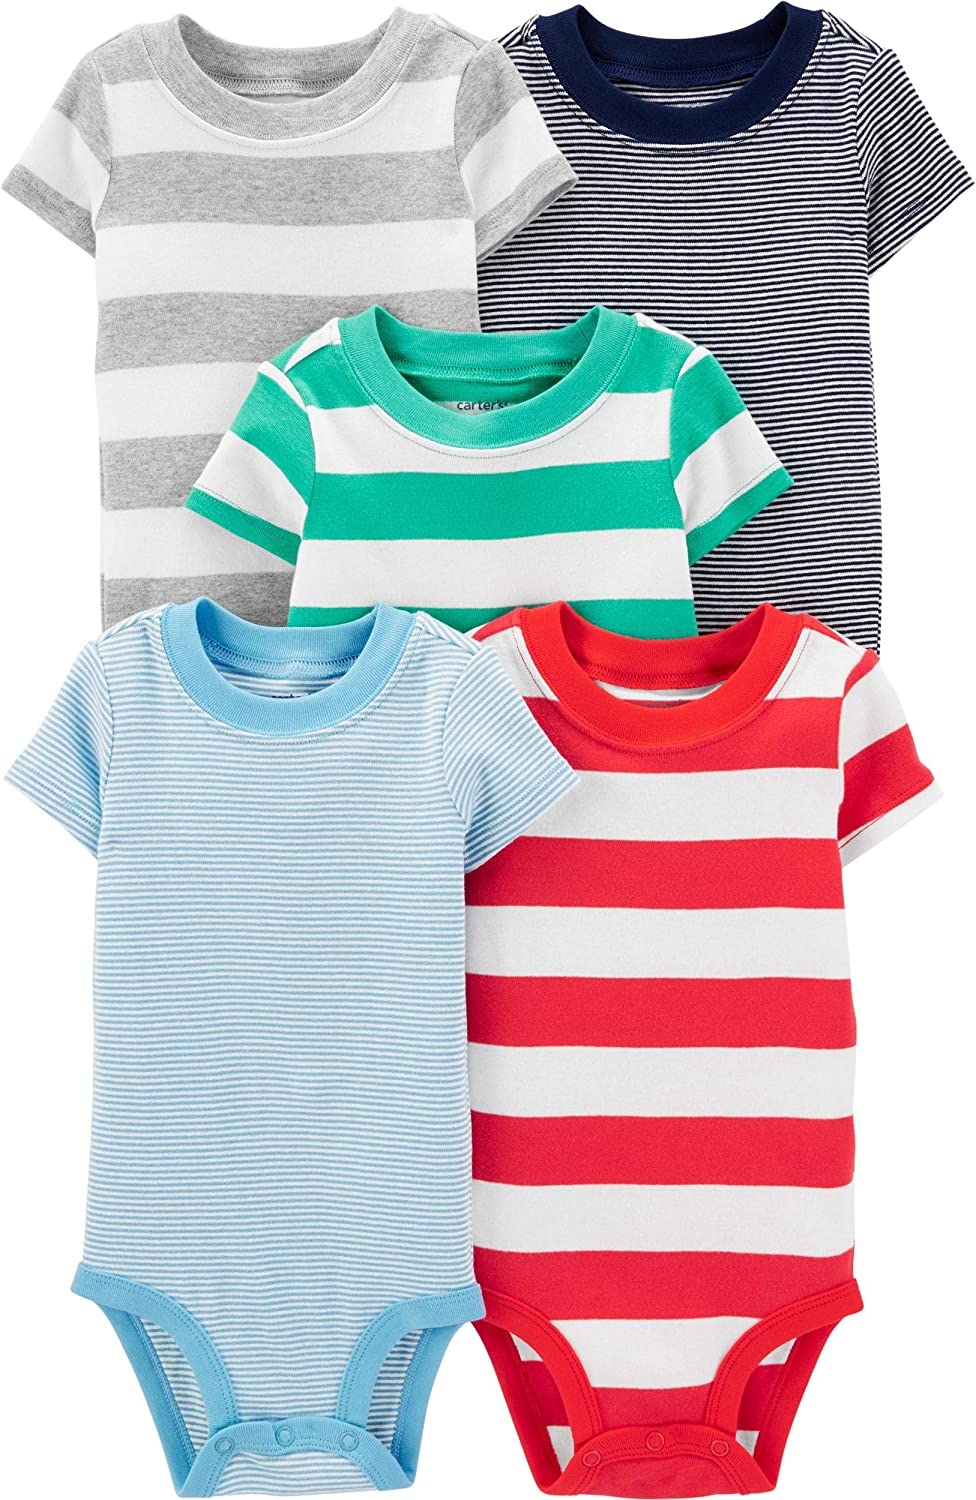 Max 57% OFF Carter's Baby Boys Bodysuits Super sale period limited